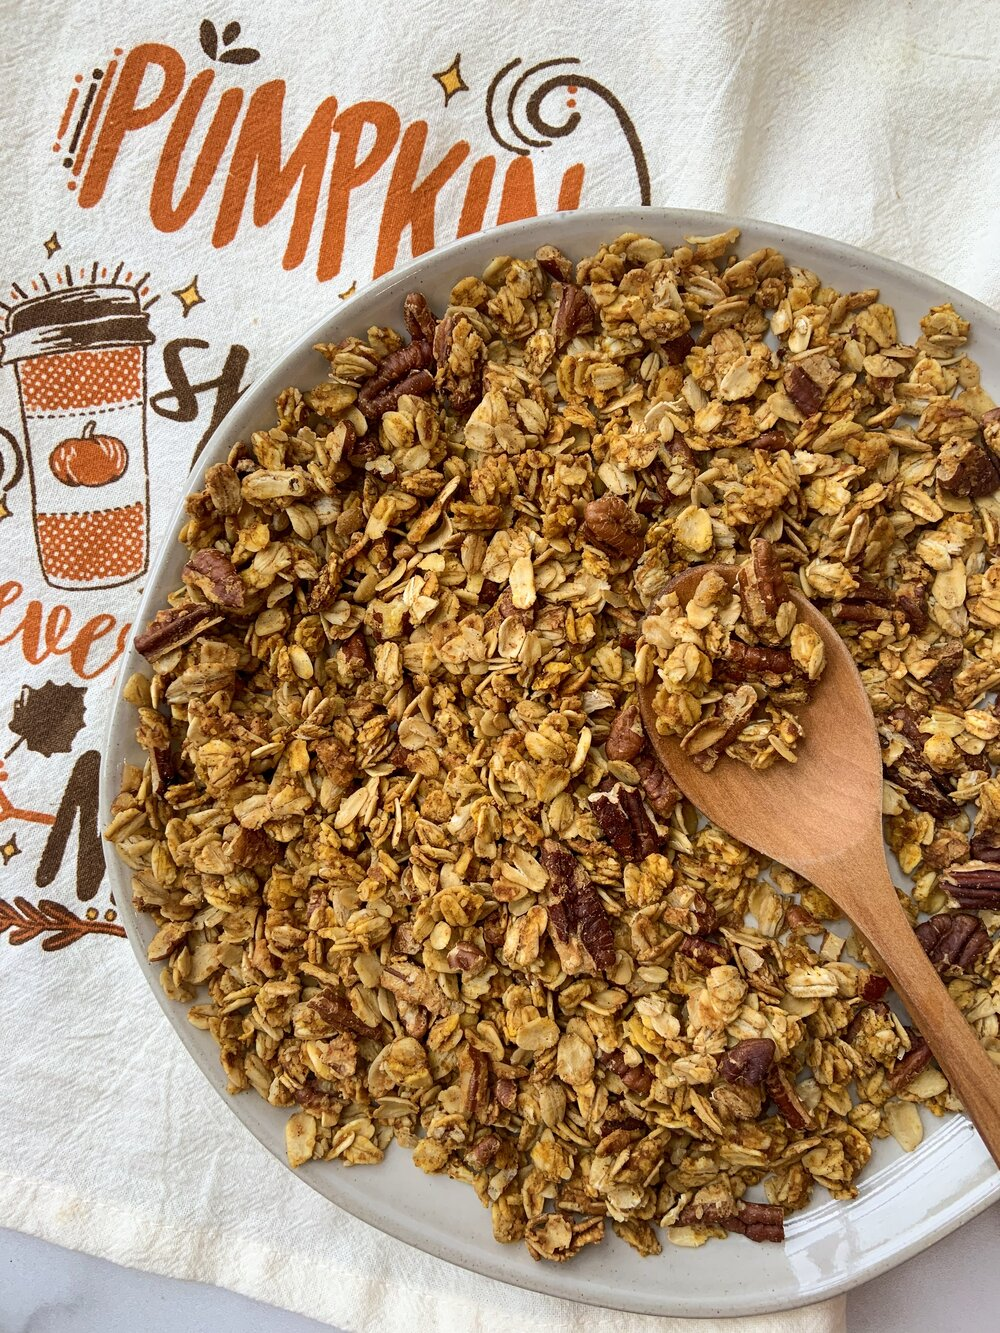 Pumpkin Spice Granola - Homemade granola is best for a few reasons. You can control the ingredients you add in, you can create flavor combinations that cannot be found in stores and you can prep a mason jar full to have on hand during the week. Try out this low-sugar, gluten-free Pumpkin Spice Granola to pair with your next yogurt bowl!